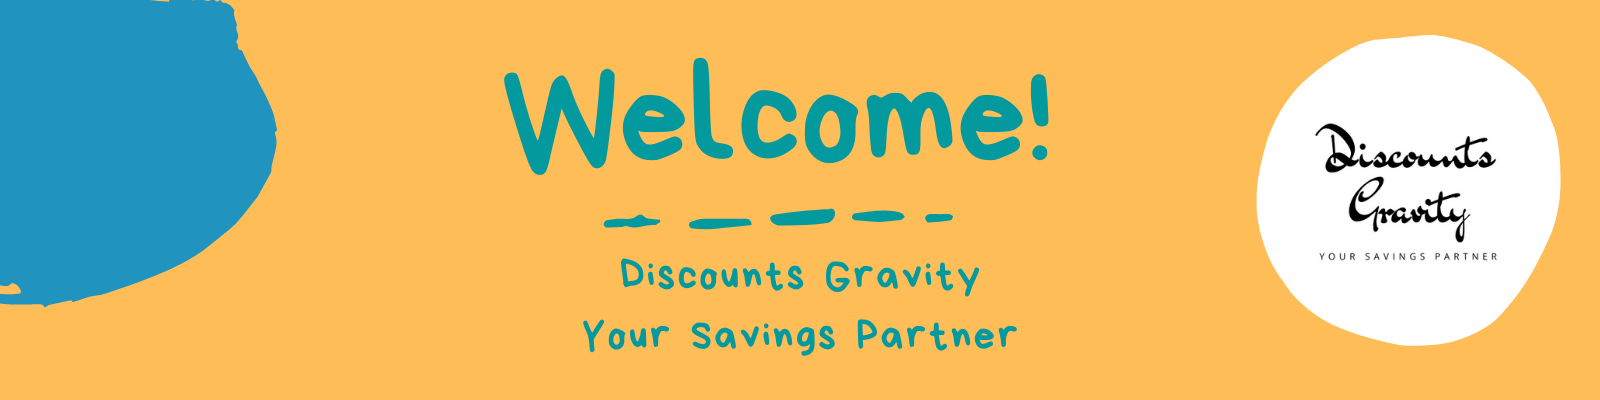 Welcome to Discounts Gravity